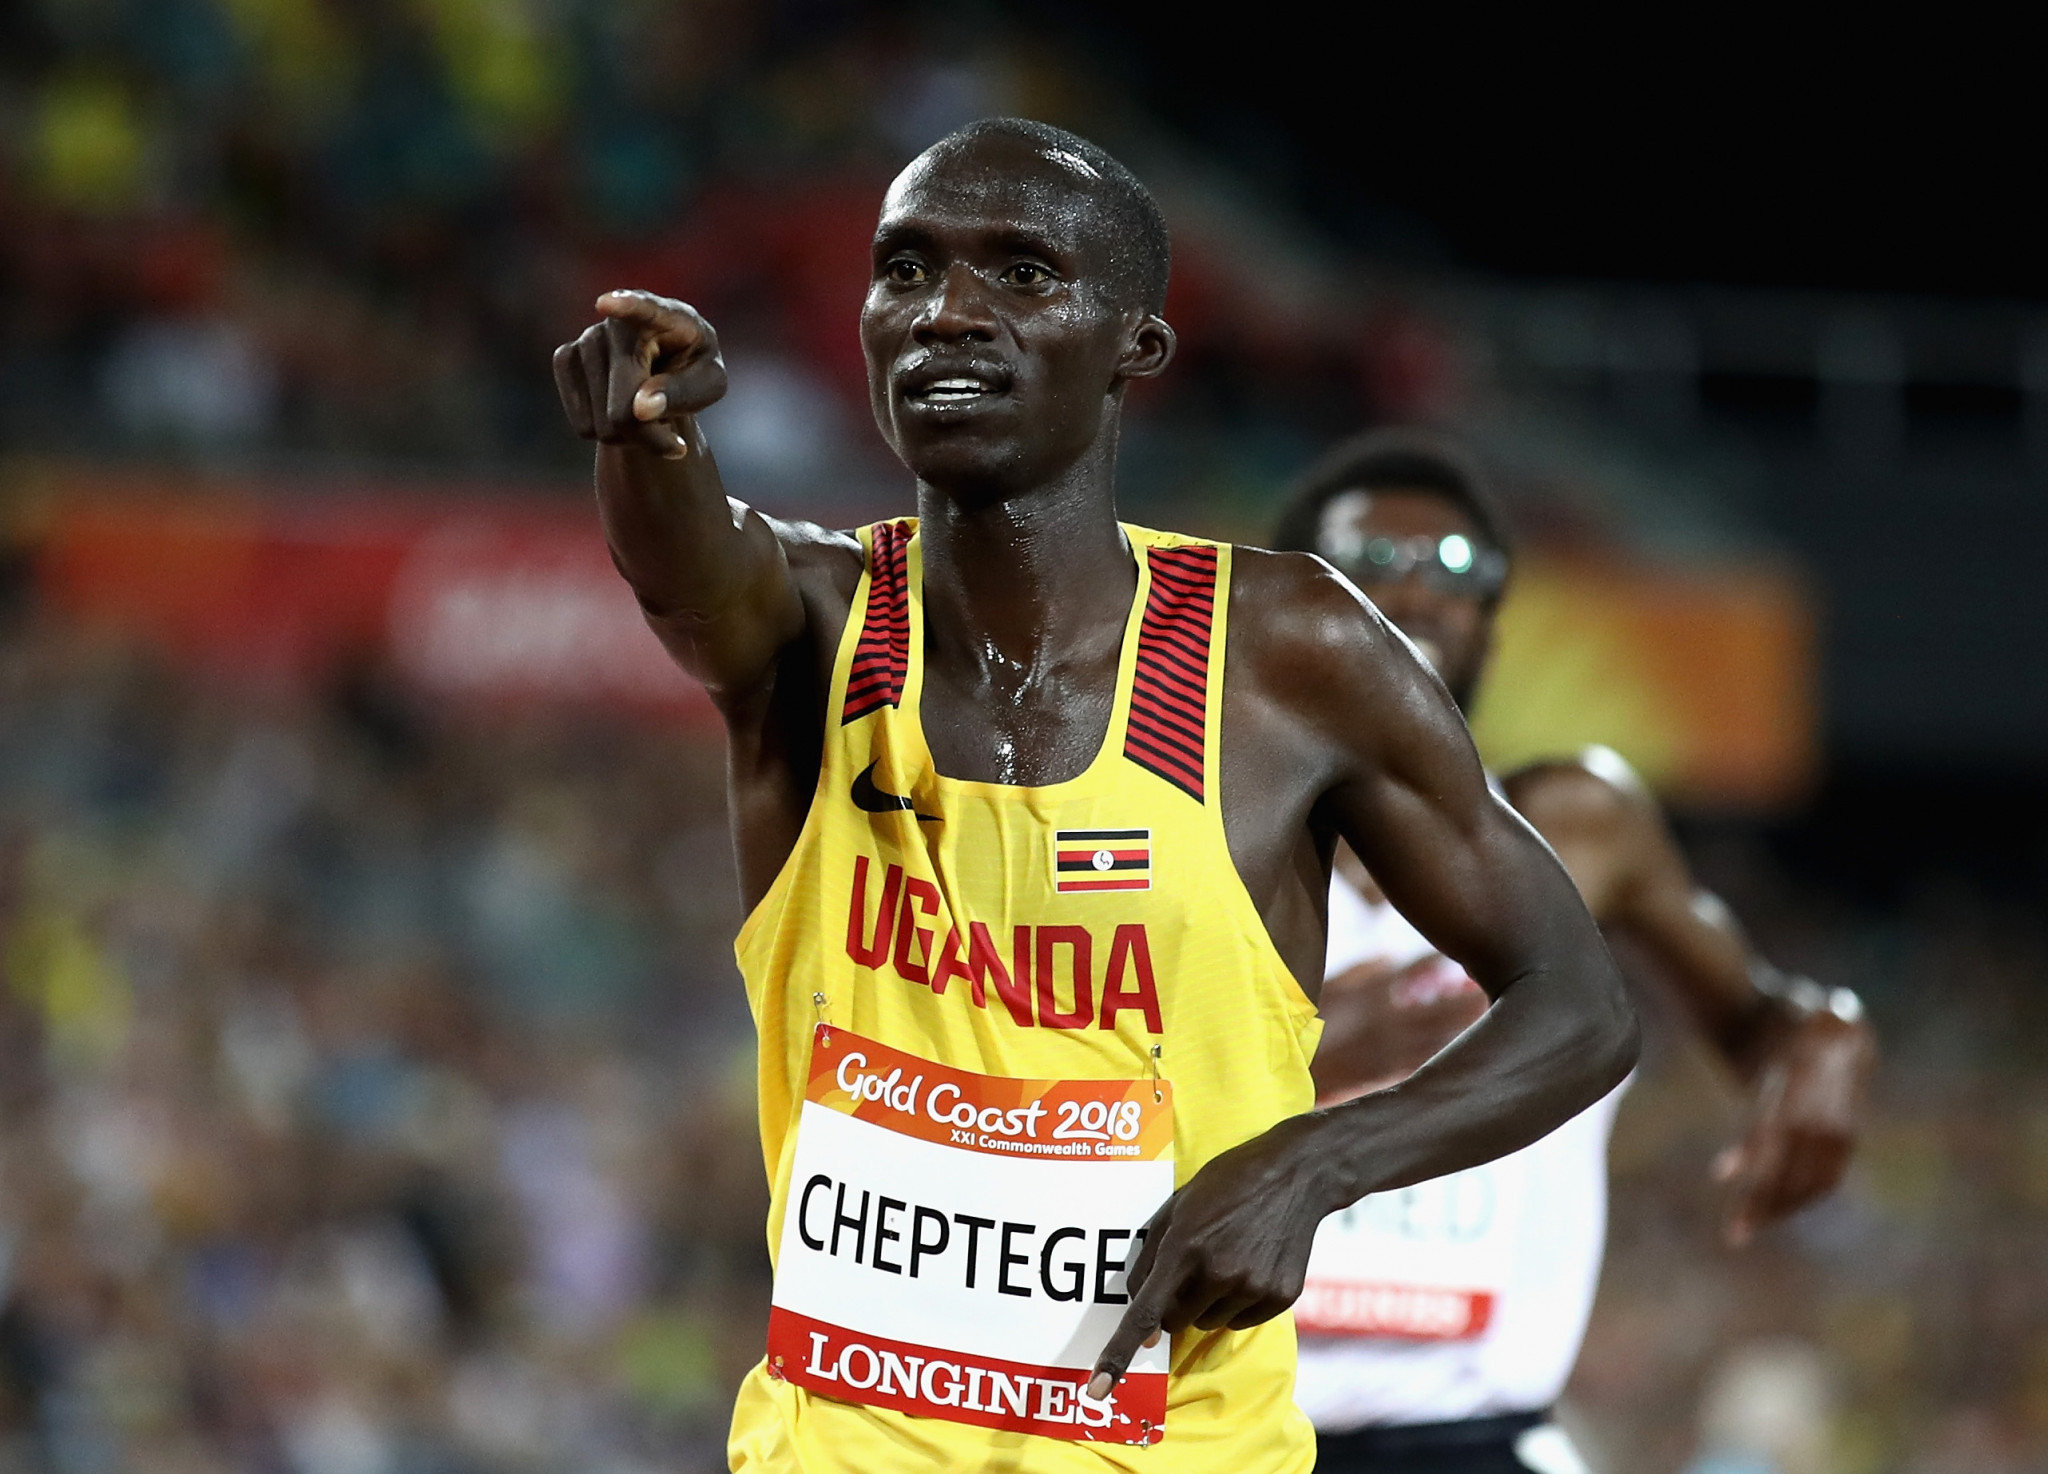 Uganda Joshua Kiprui Cheptegei won Commonwealth Games gold medals in the 5,000 and 10,000 metres at Gold Coast 2018 - an event where six of his team-mates failed to return home afterwards ©Getty Images